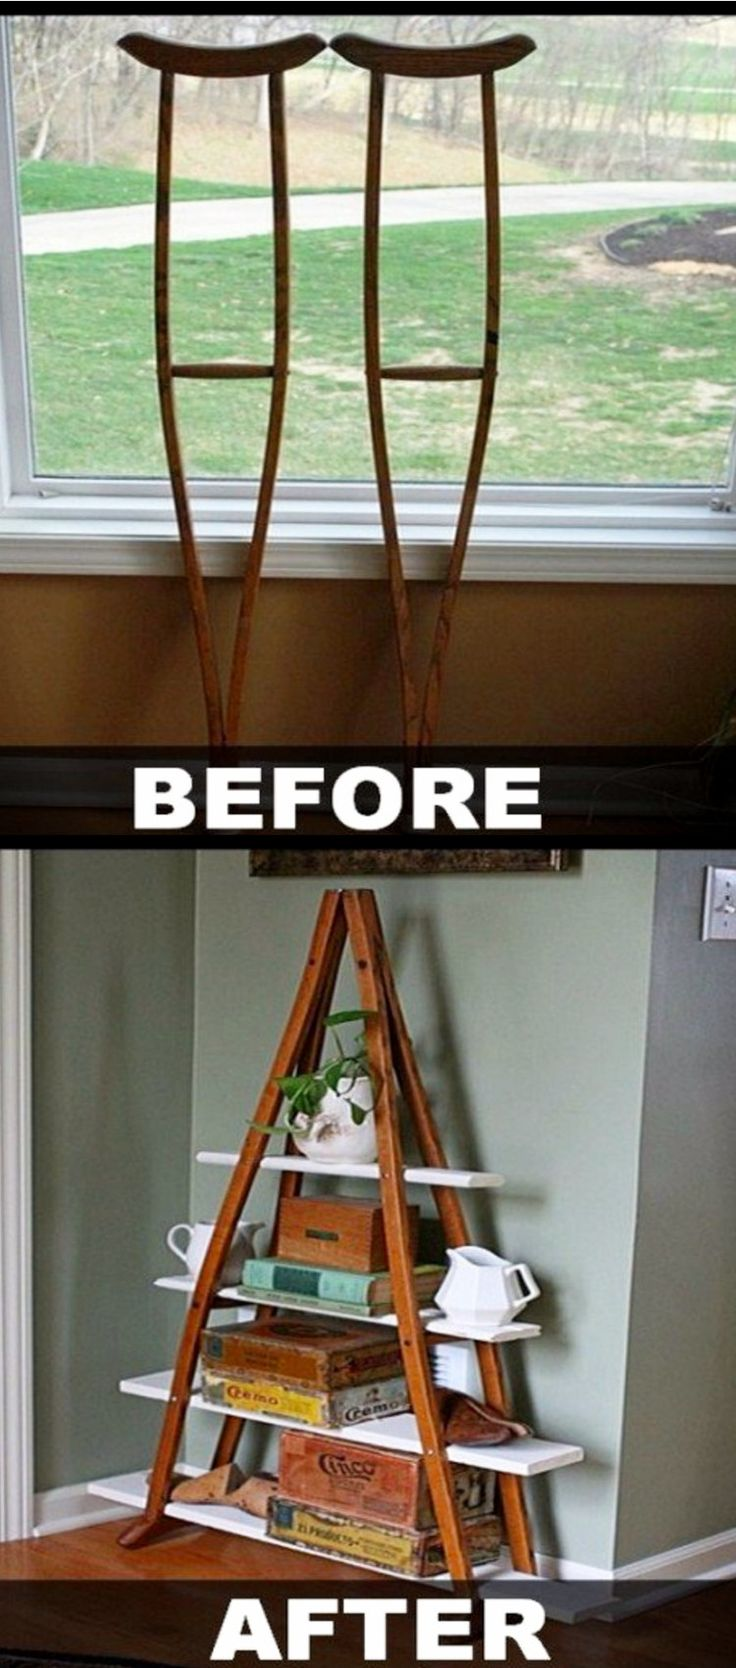 Upcycled Home Decor Ideas • Turn Old Crutches Into Shelves